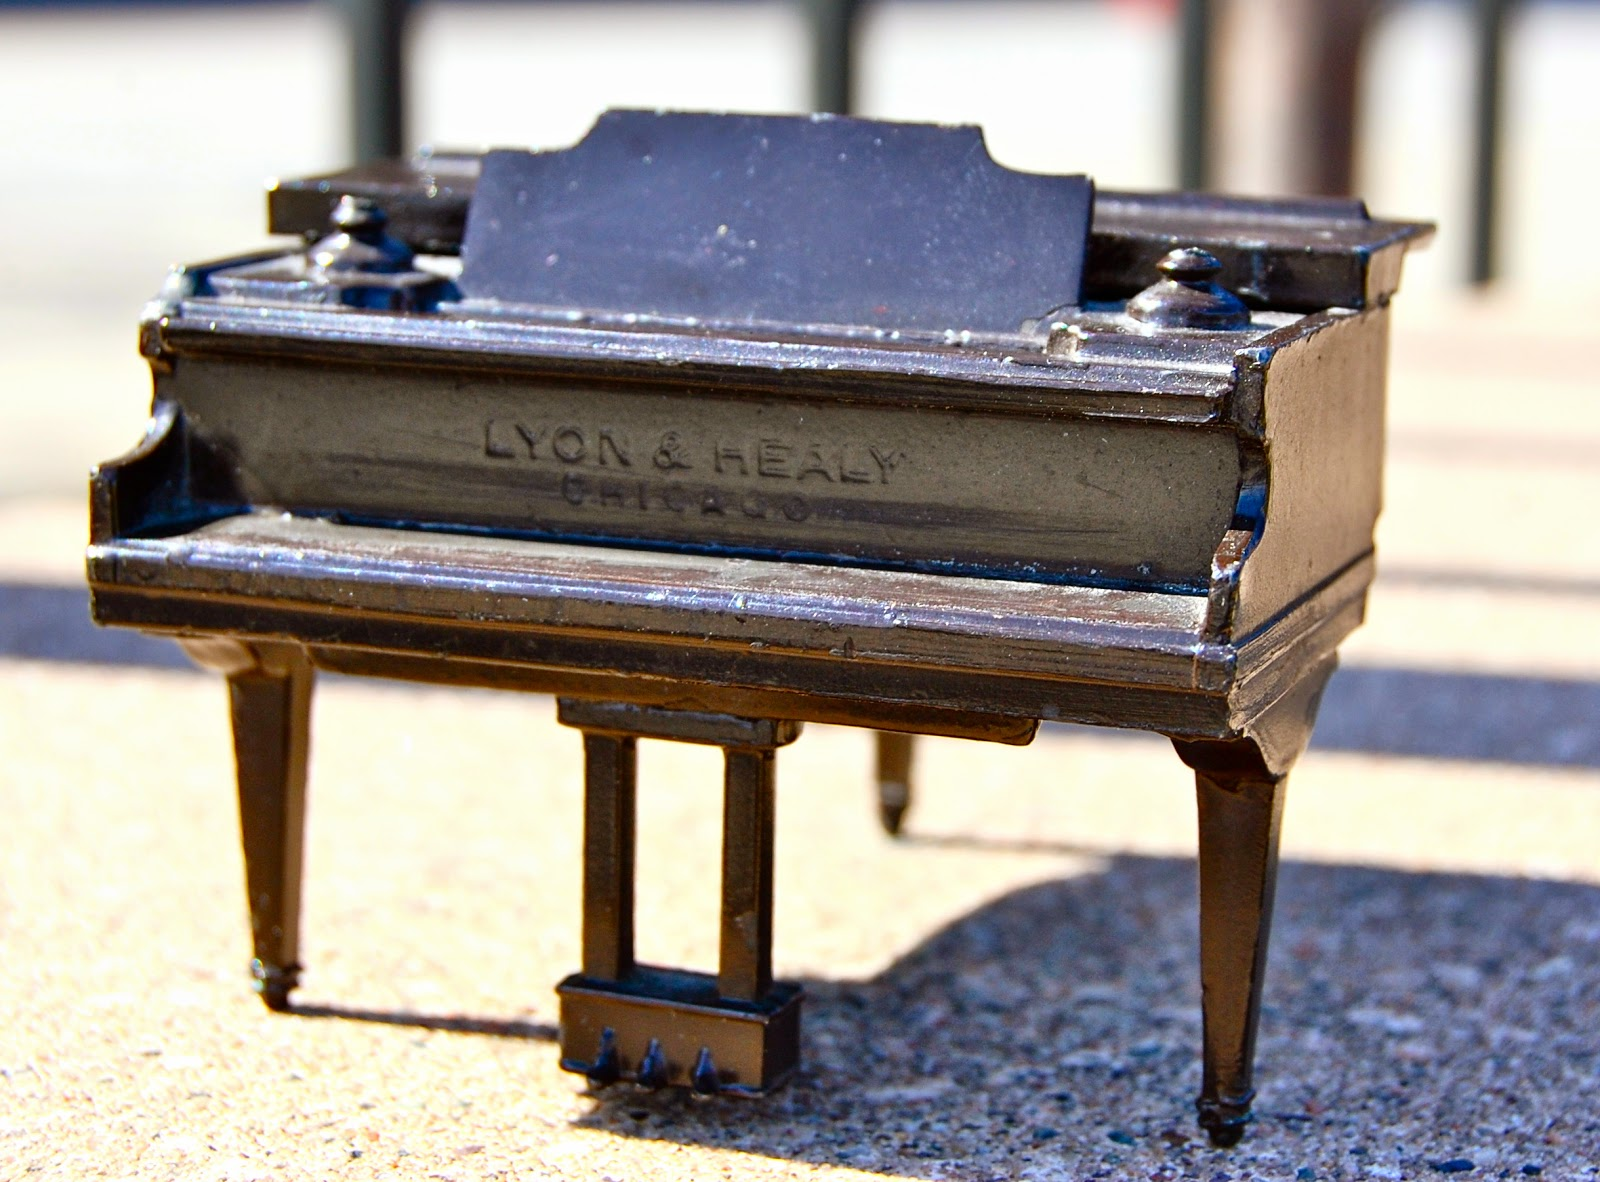 They Marketed It As An Apartment Size Grand Piano This Piece Is Only About 4 X 3 1 2 And In S Original Brown Paint Condition Excellent